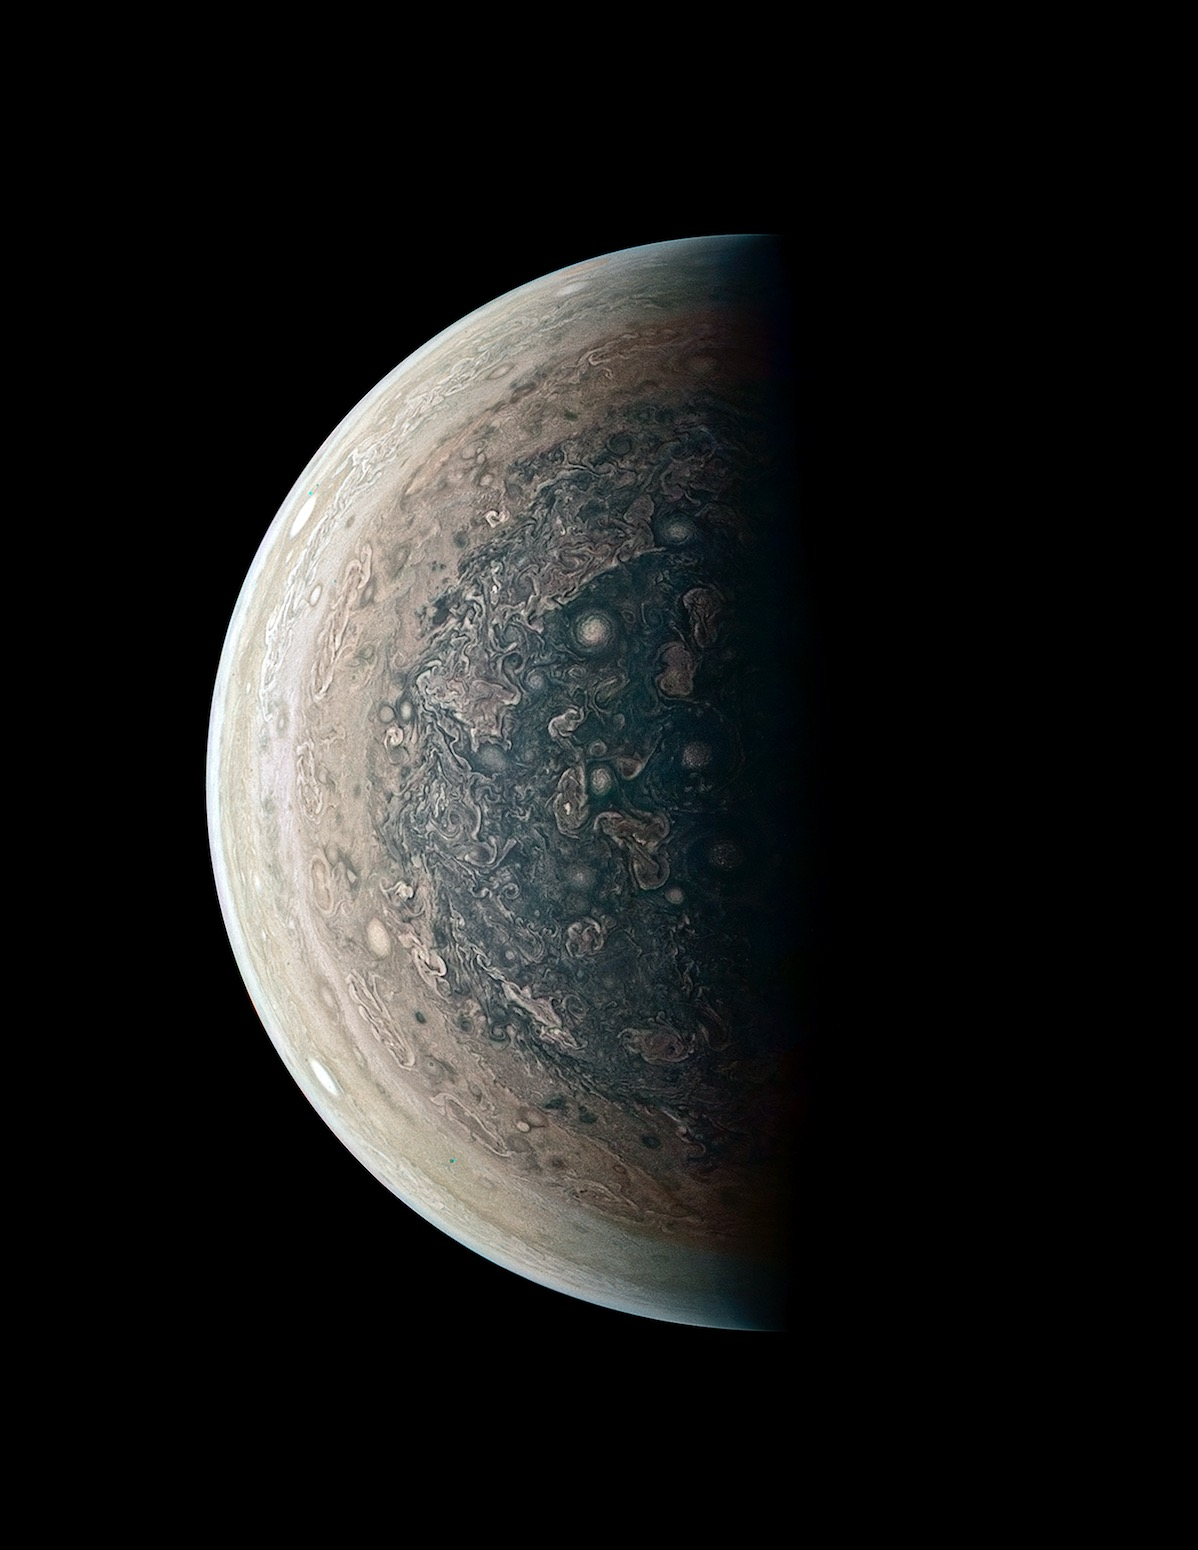 Jupiter Wallpaper 9   1198 X 1550 stmednet 1198x1550